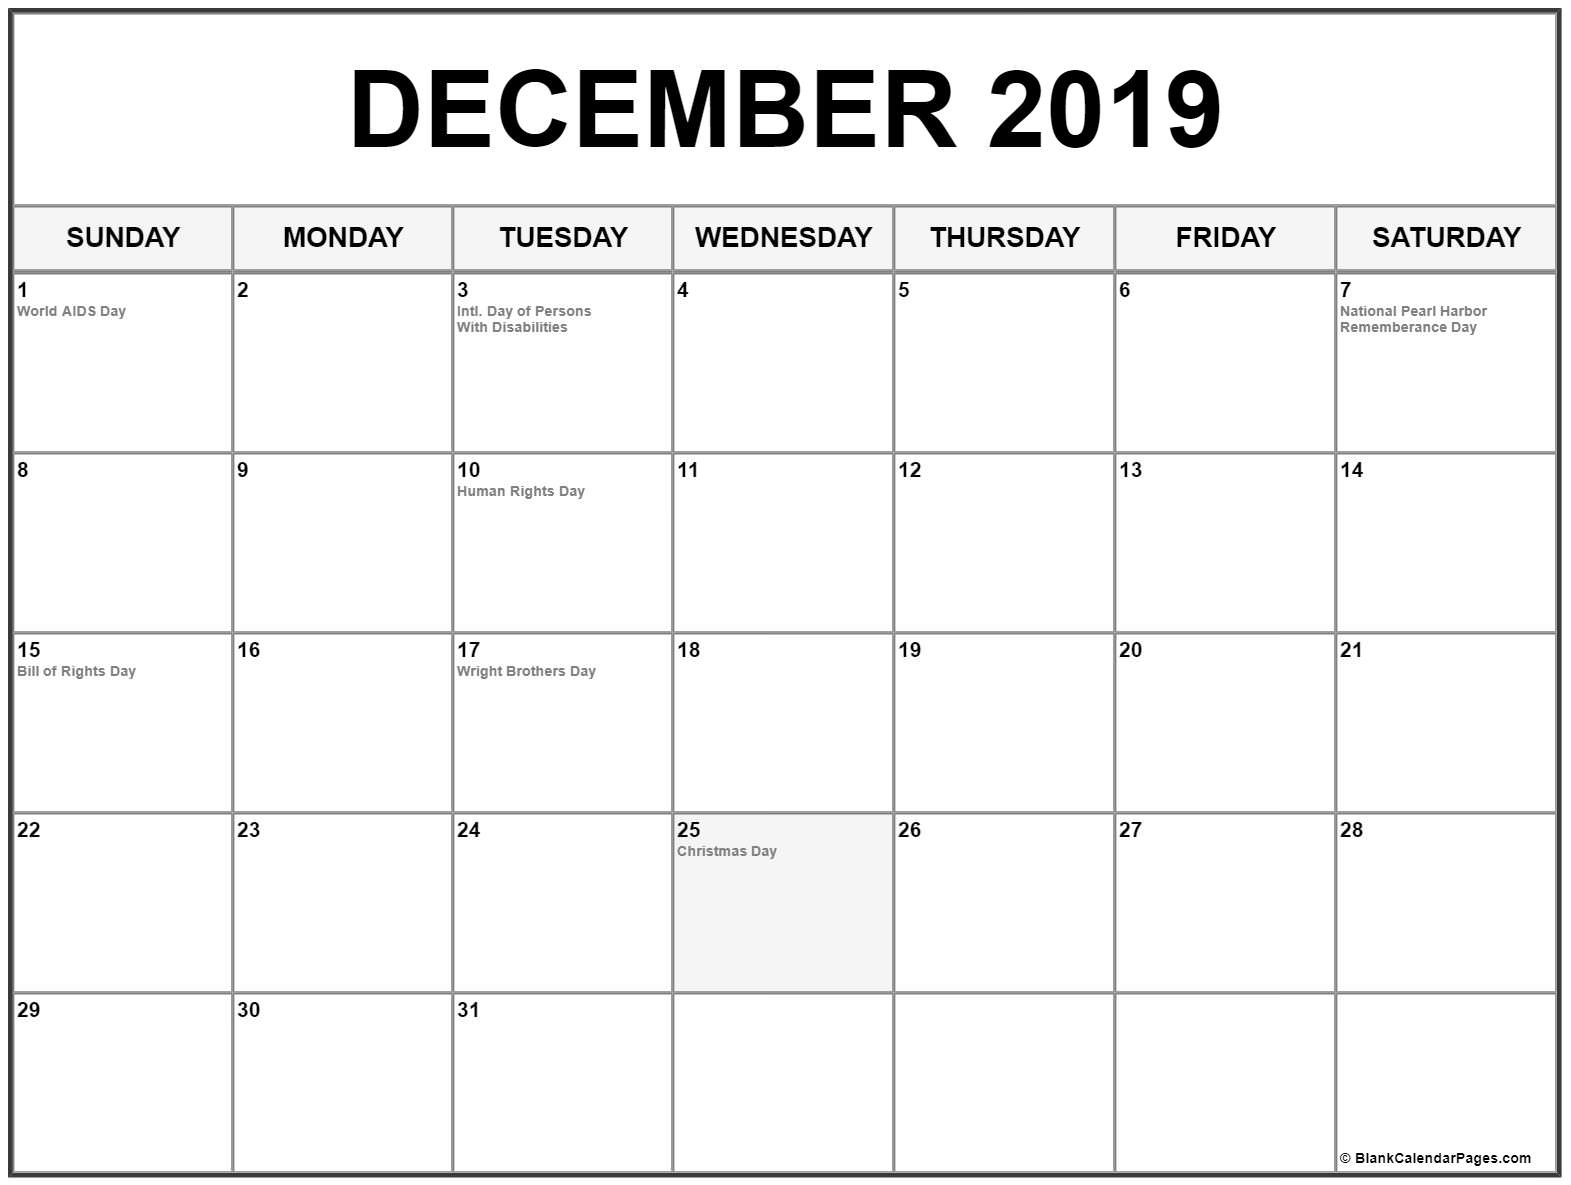 Collection Of December 2019 Calendars With Holidays Calendar Holidays In December